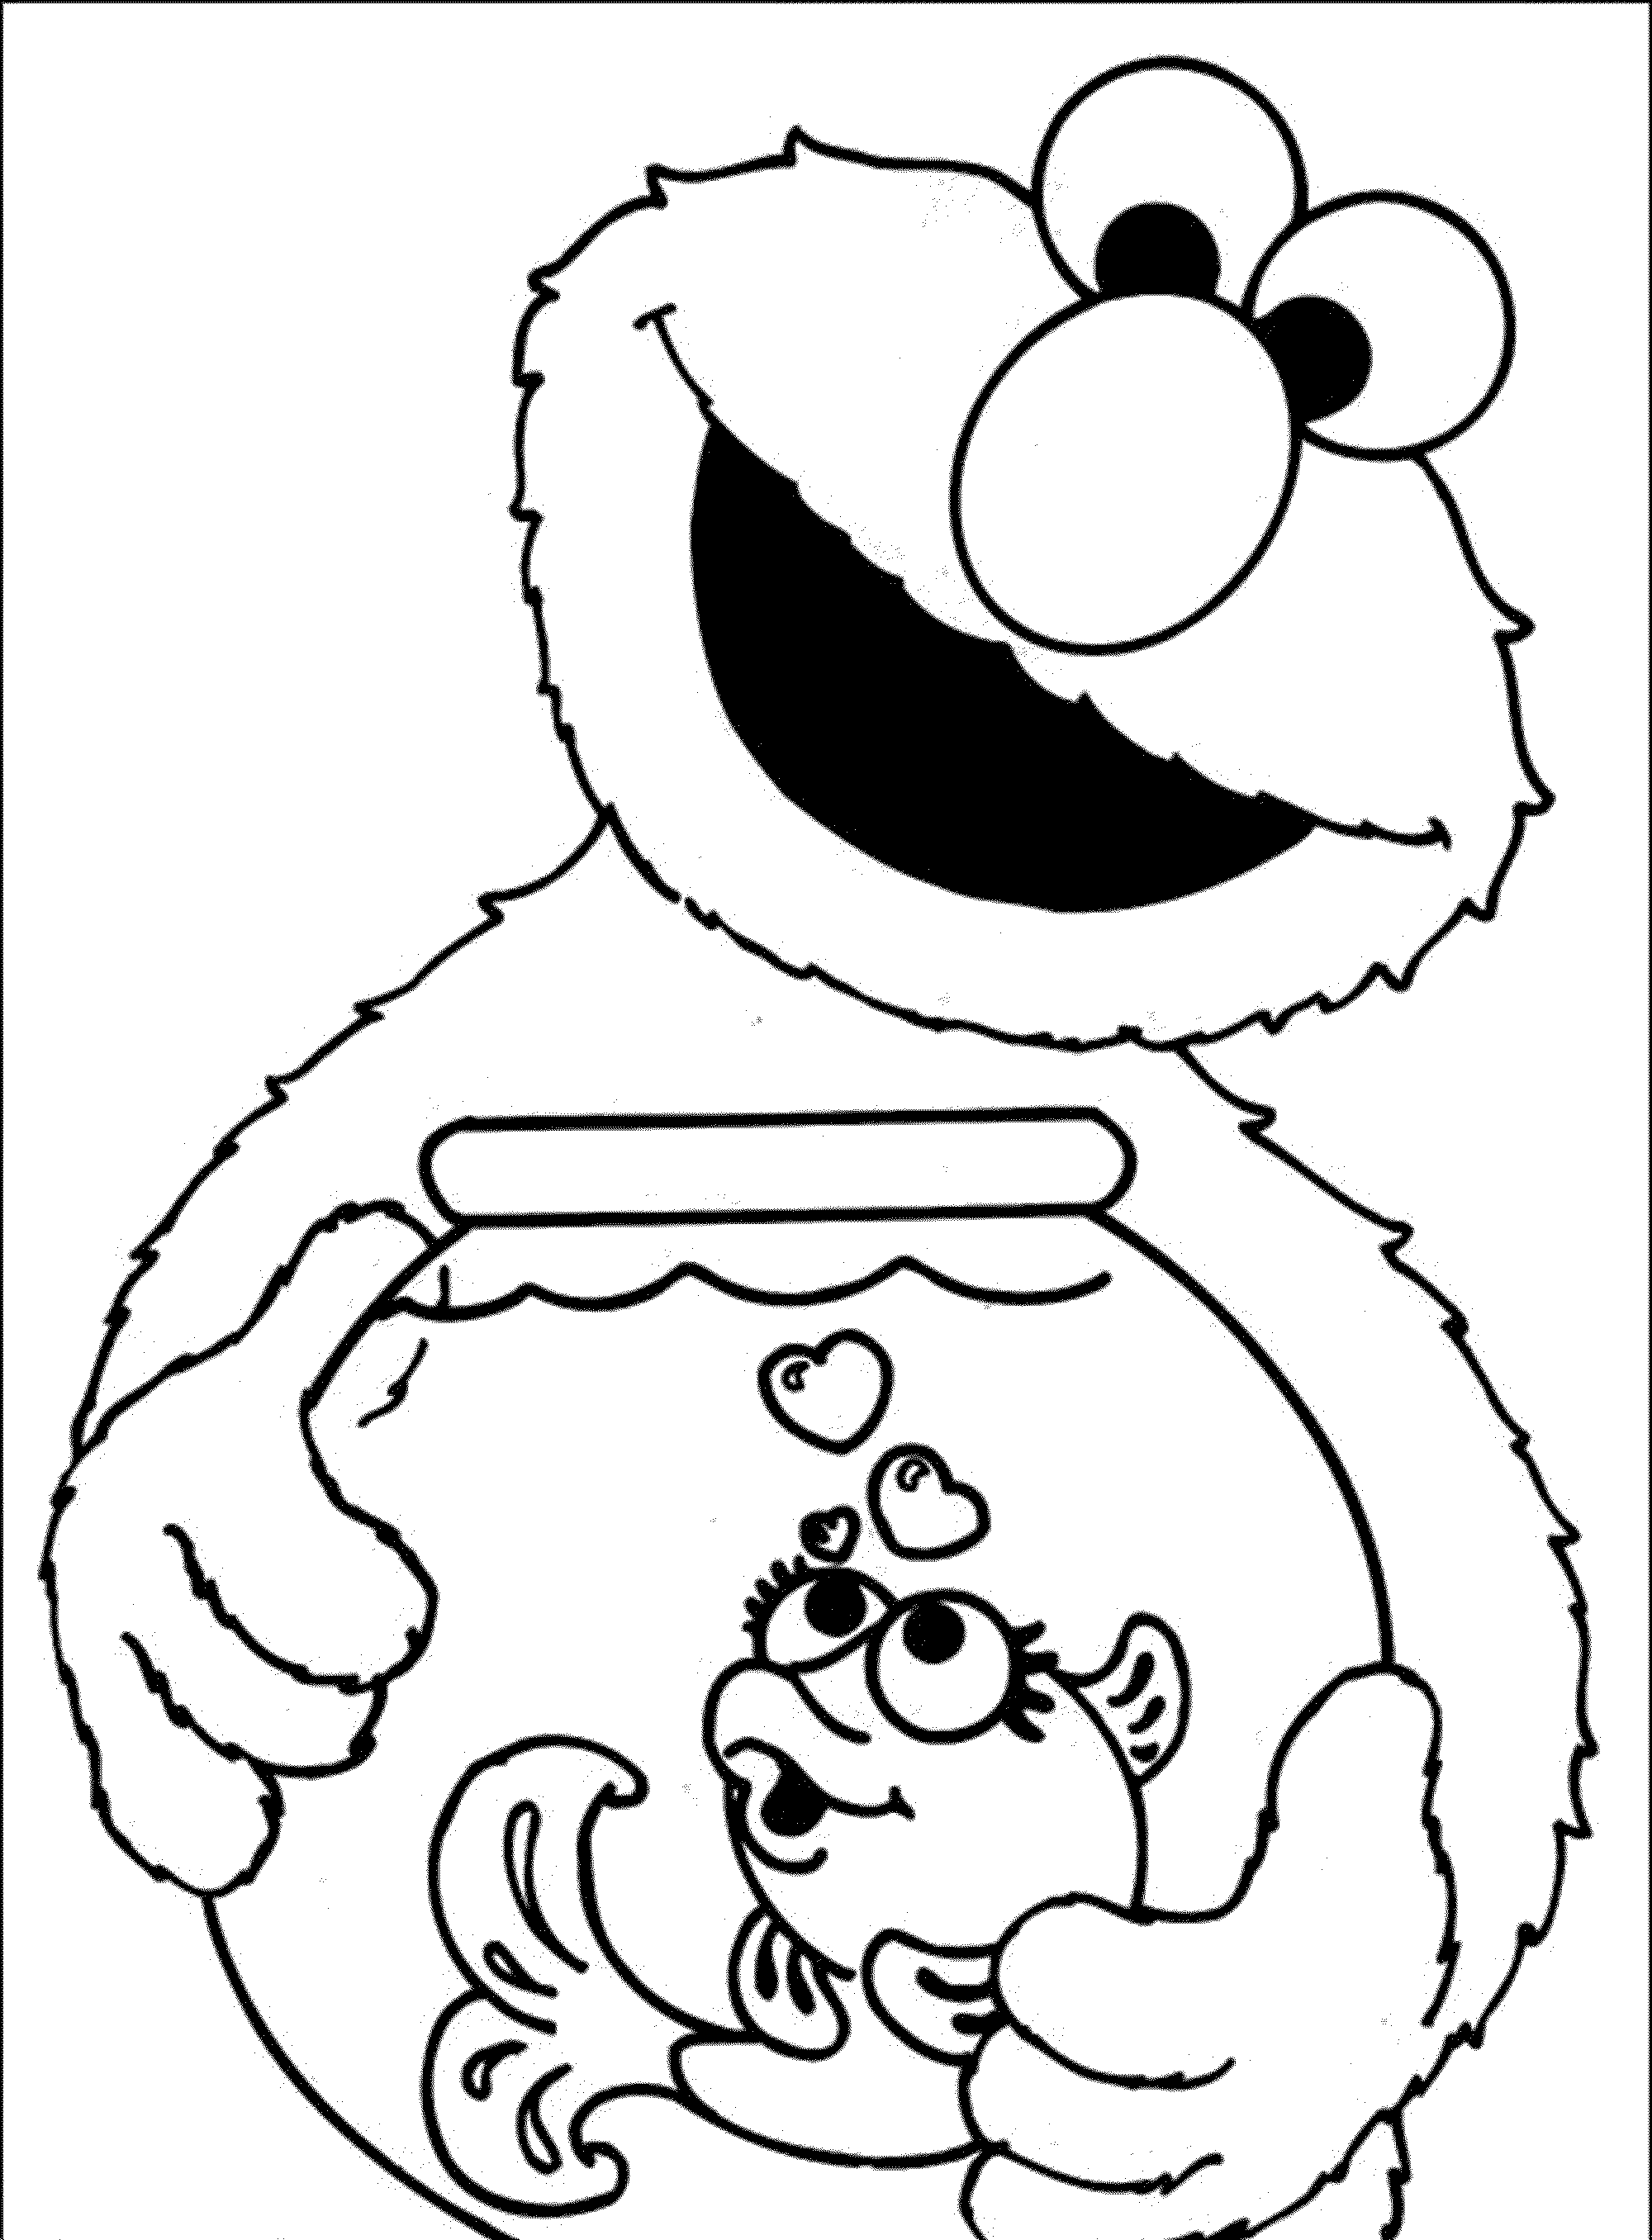 Print Download Elmo Coloring Pages For Children S Home Activity Free Coloring Pages For